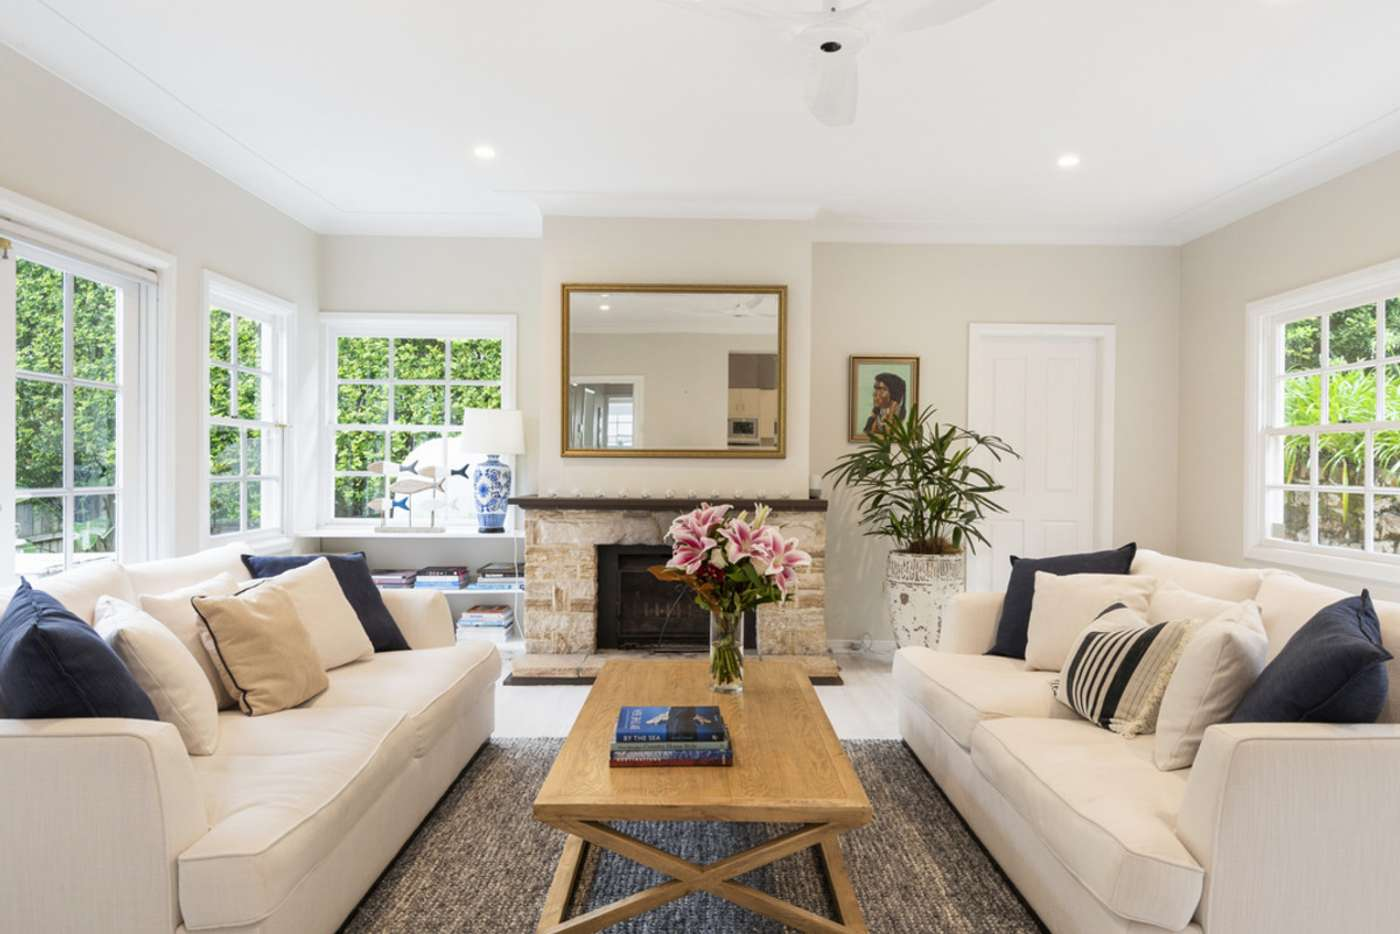 Main view of Homely house listing, 15 Crescent Road, Mona Vale NSW 2103